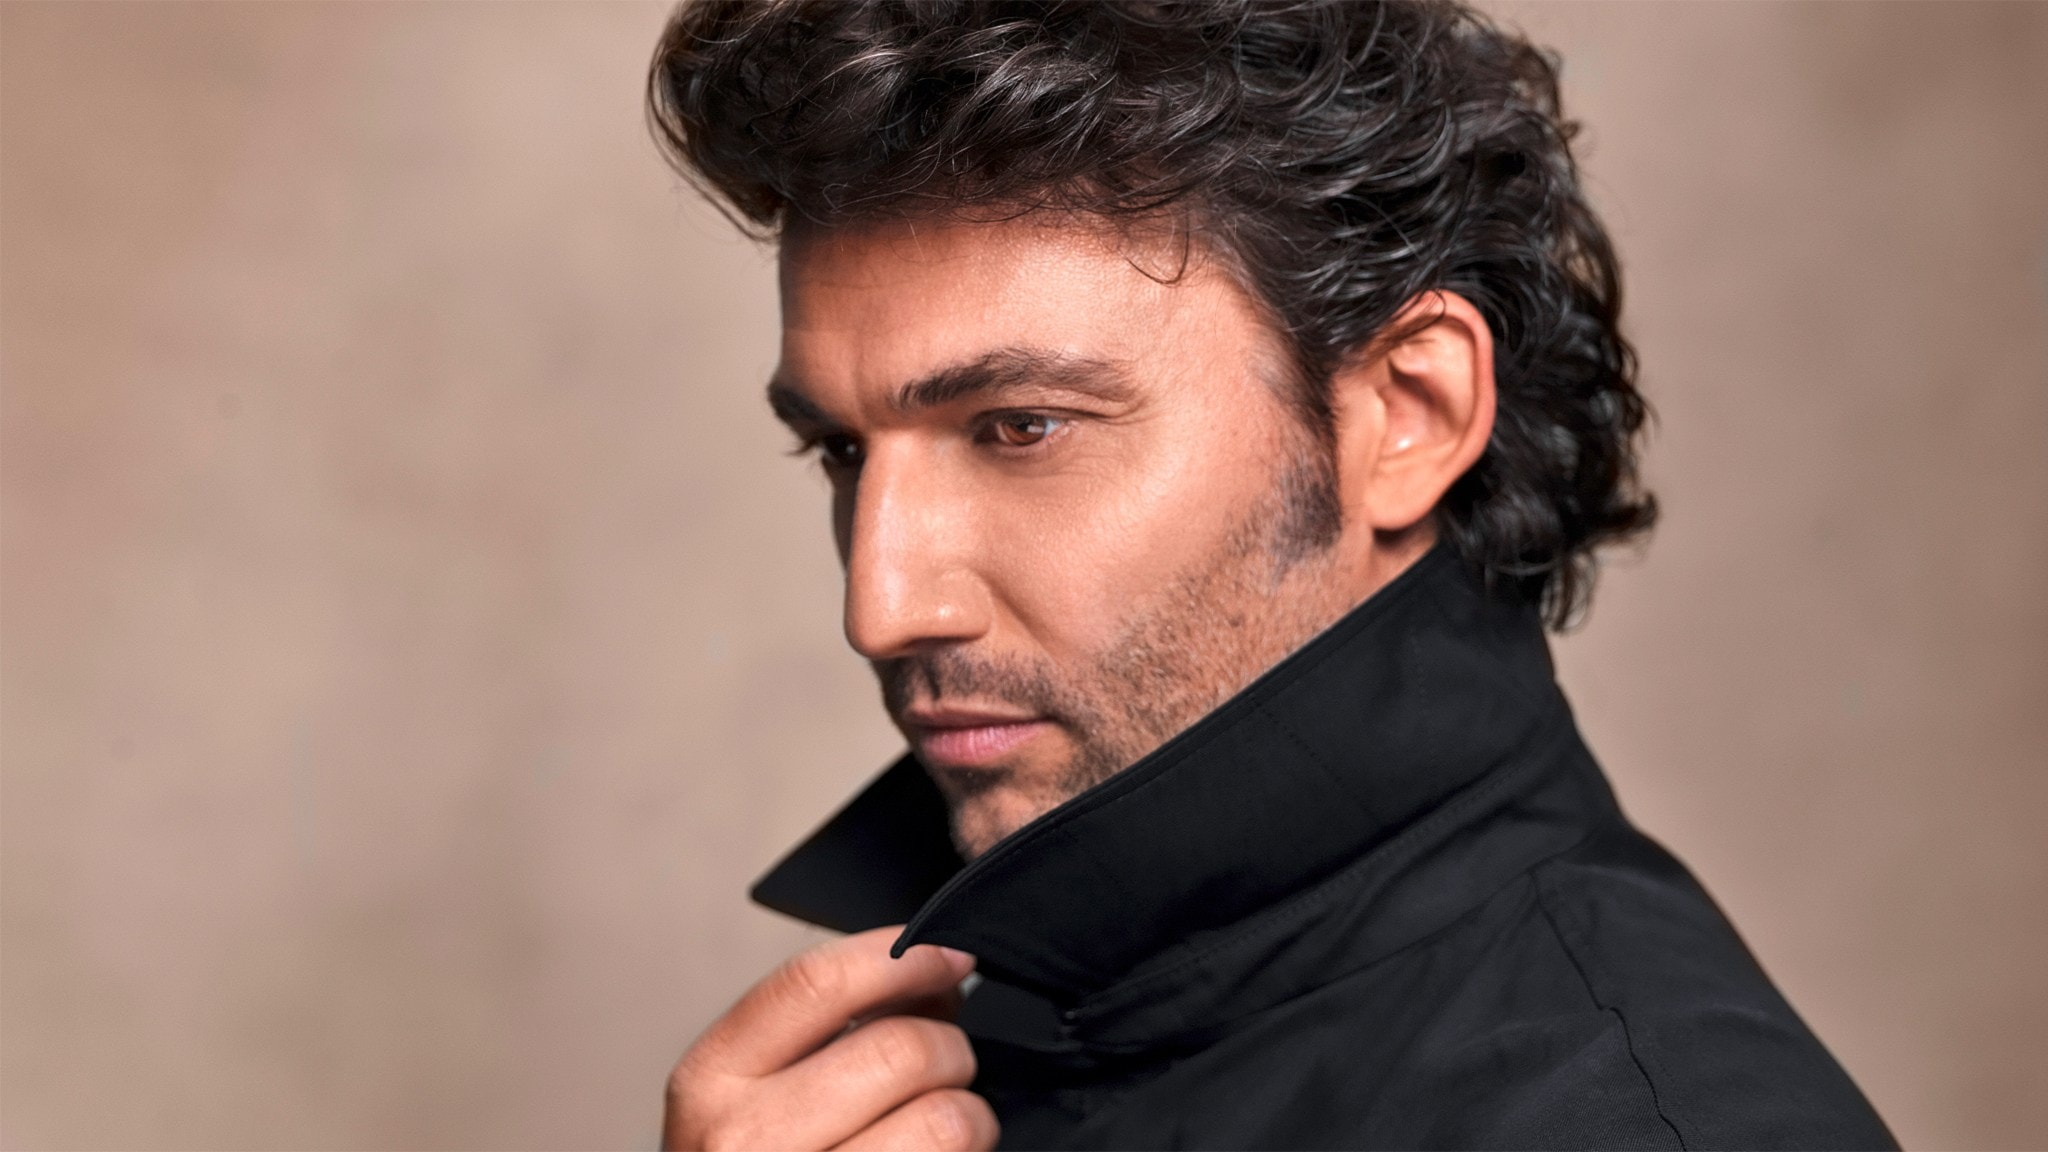 Jonas Kaufmann: The voice is the most versatile instrument